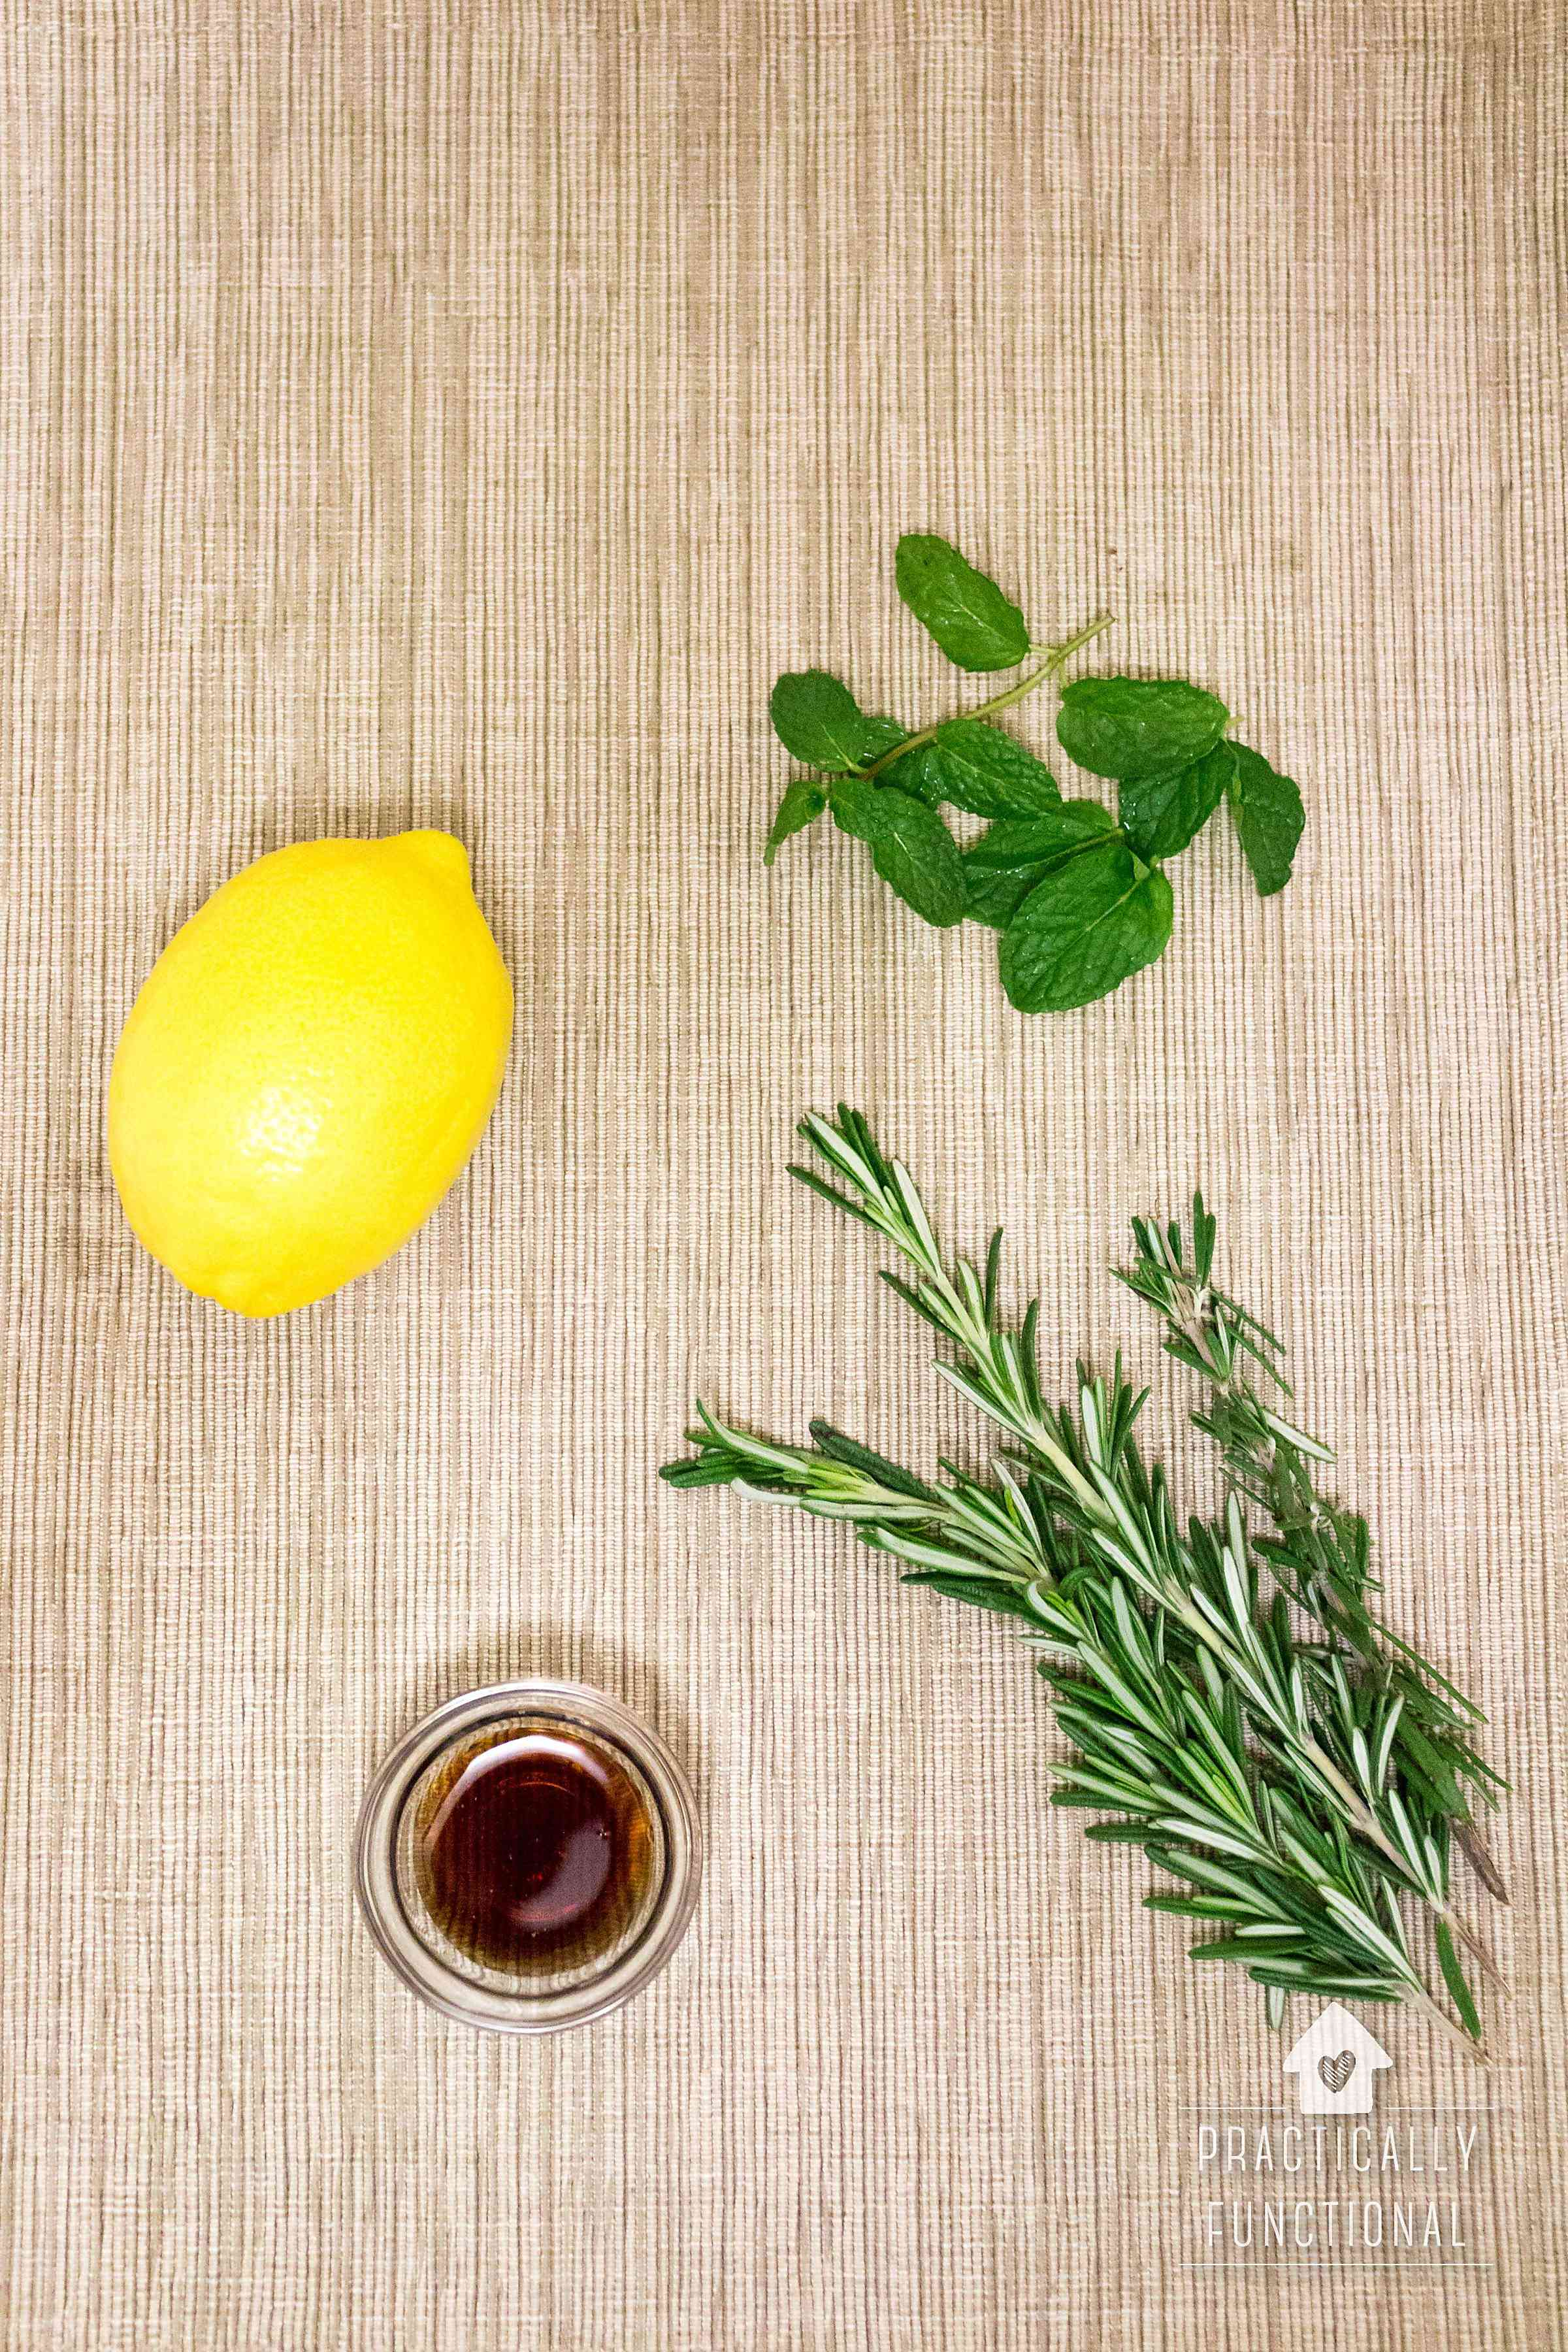 Mint, lemon, and rosemary simmer pot recipe for everyday use